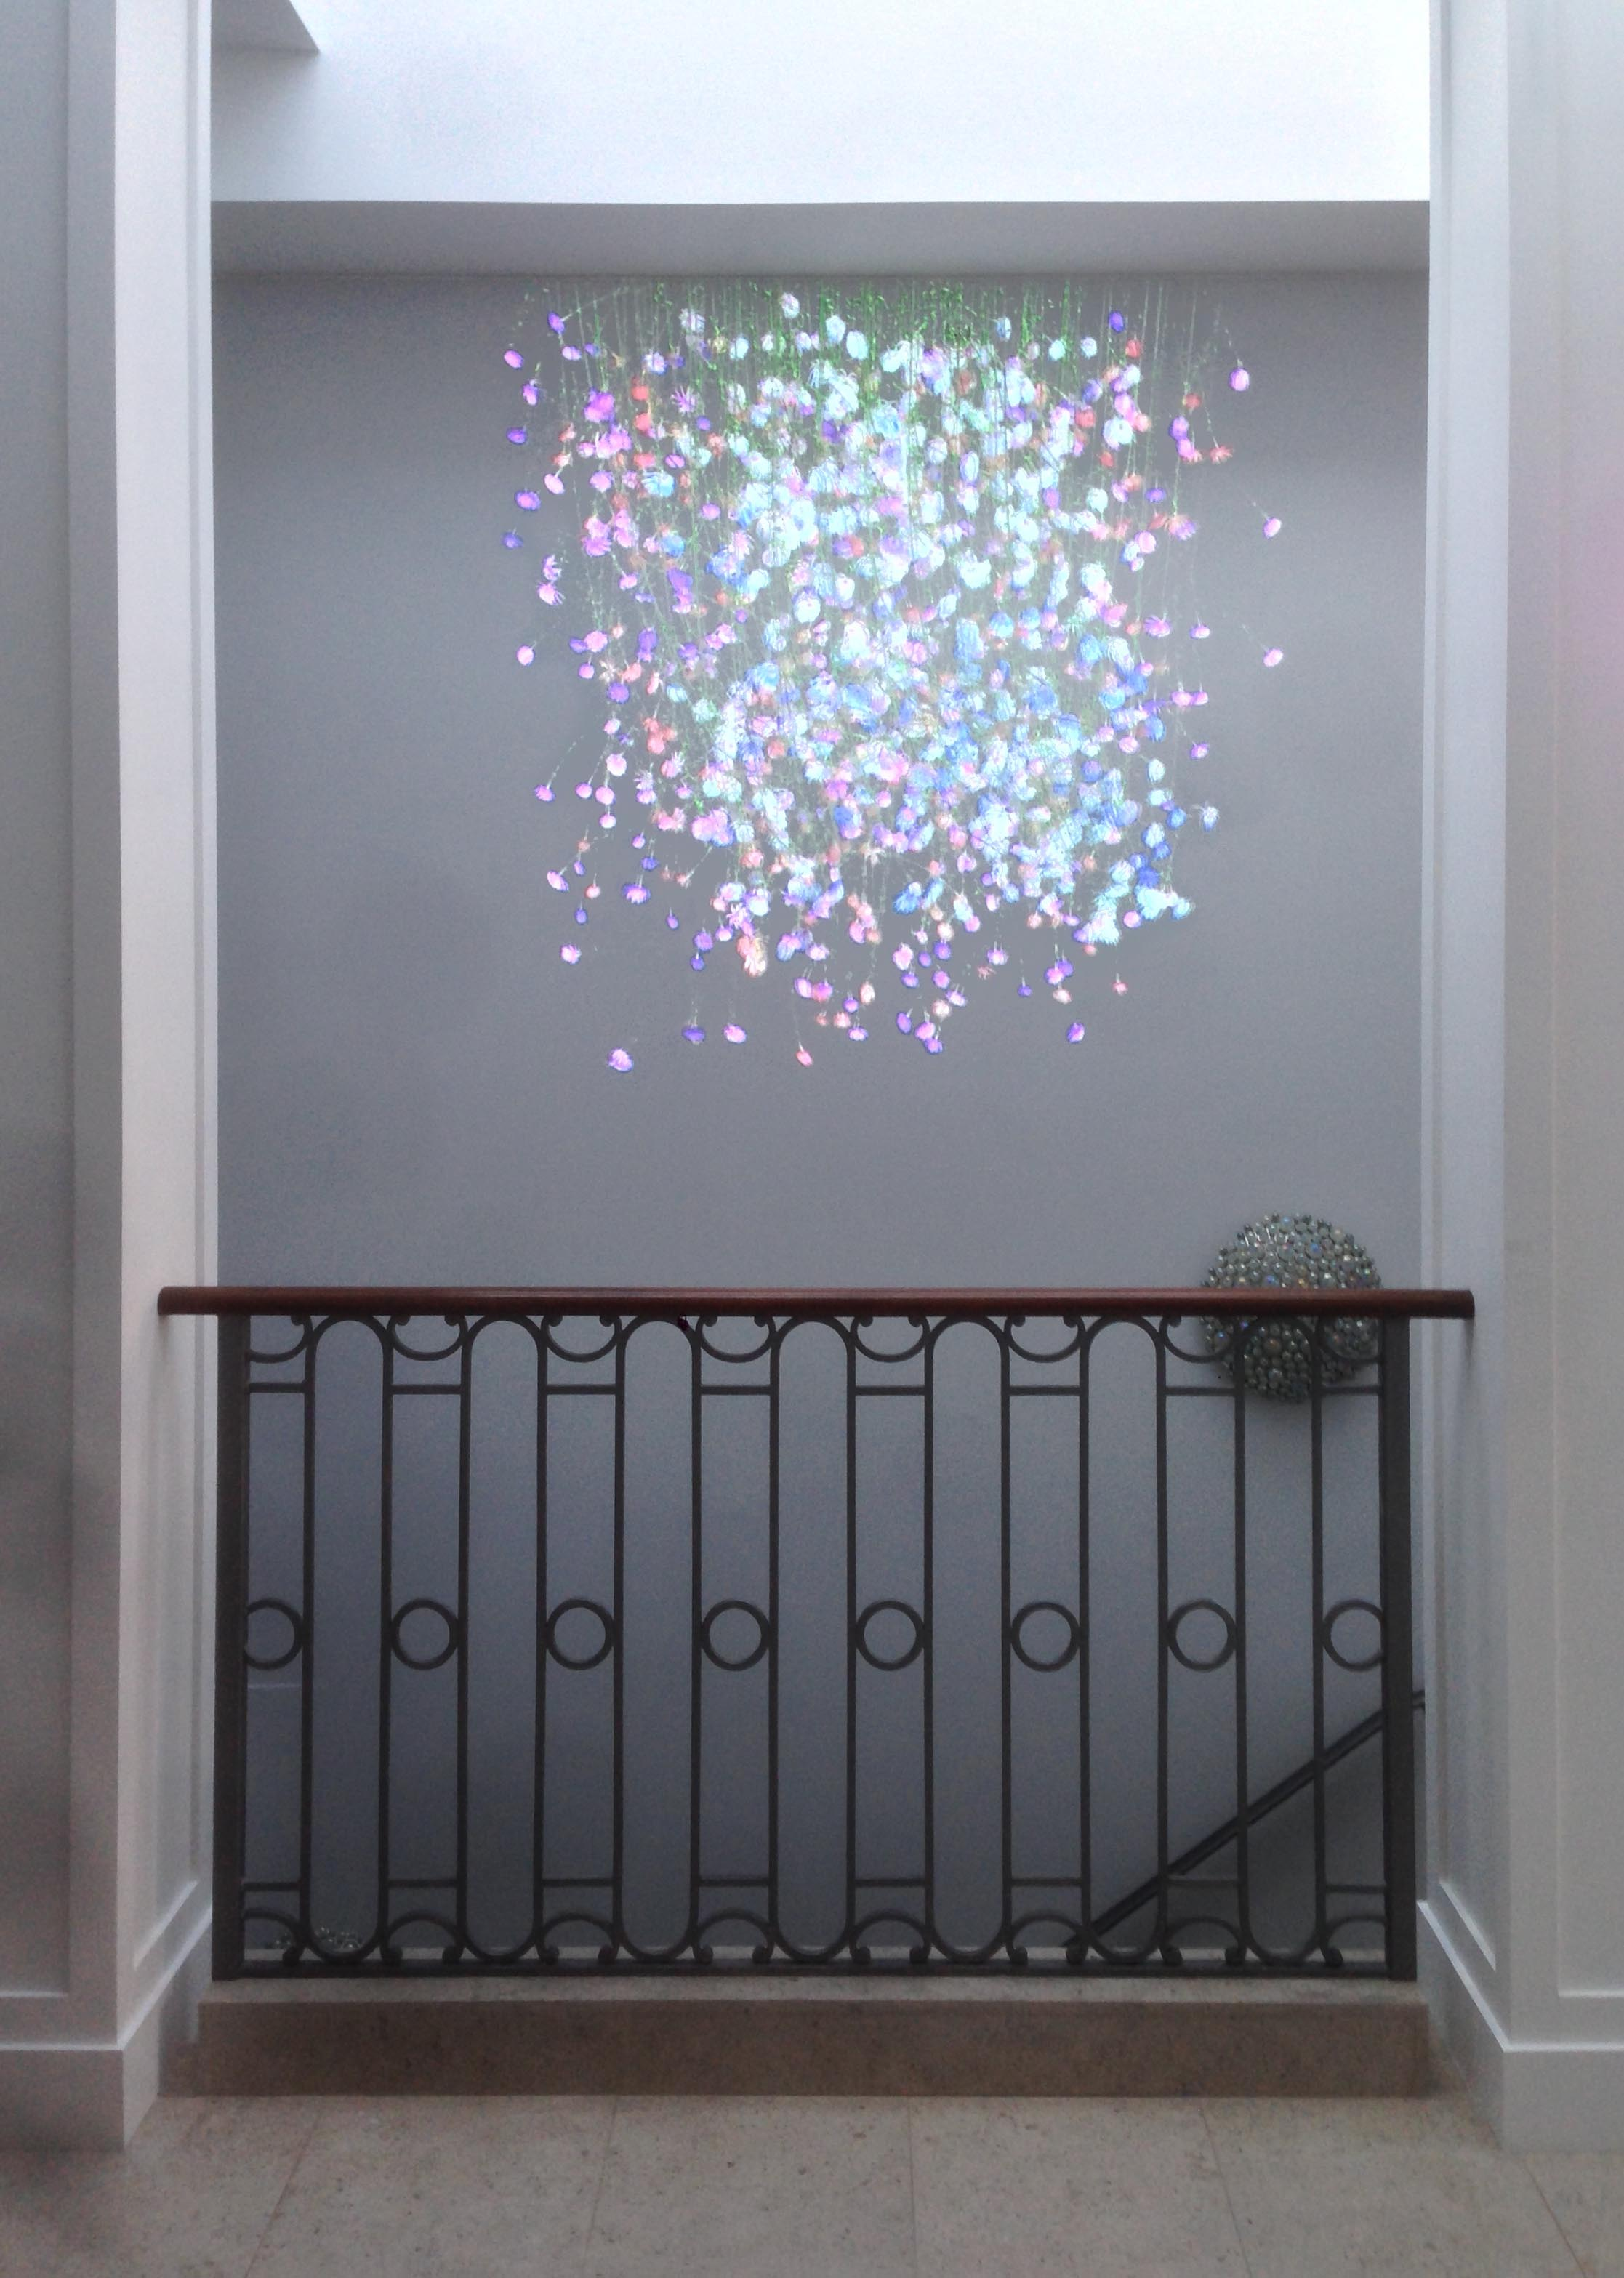 This projection art piece currently lives in a private home.